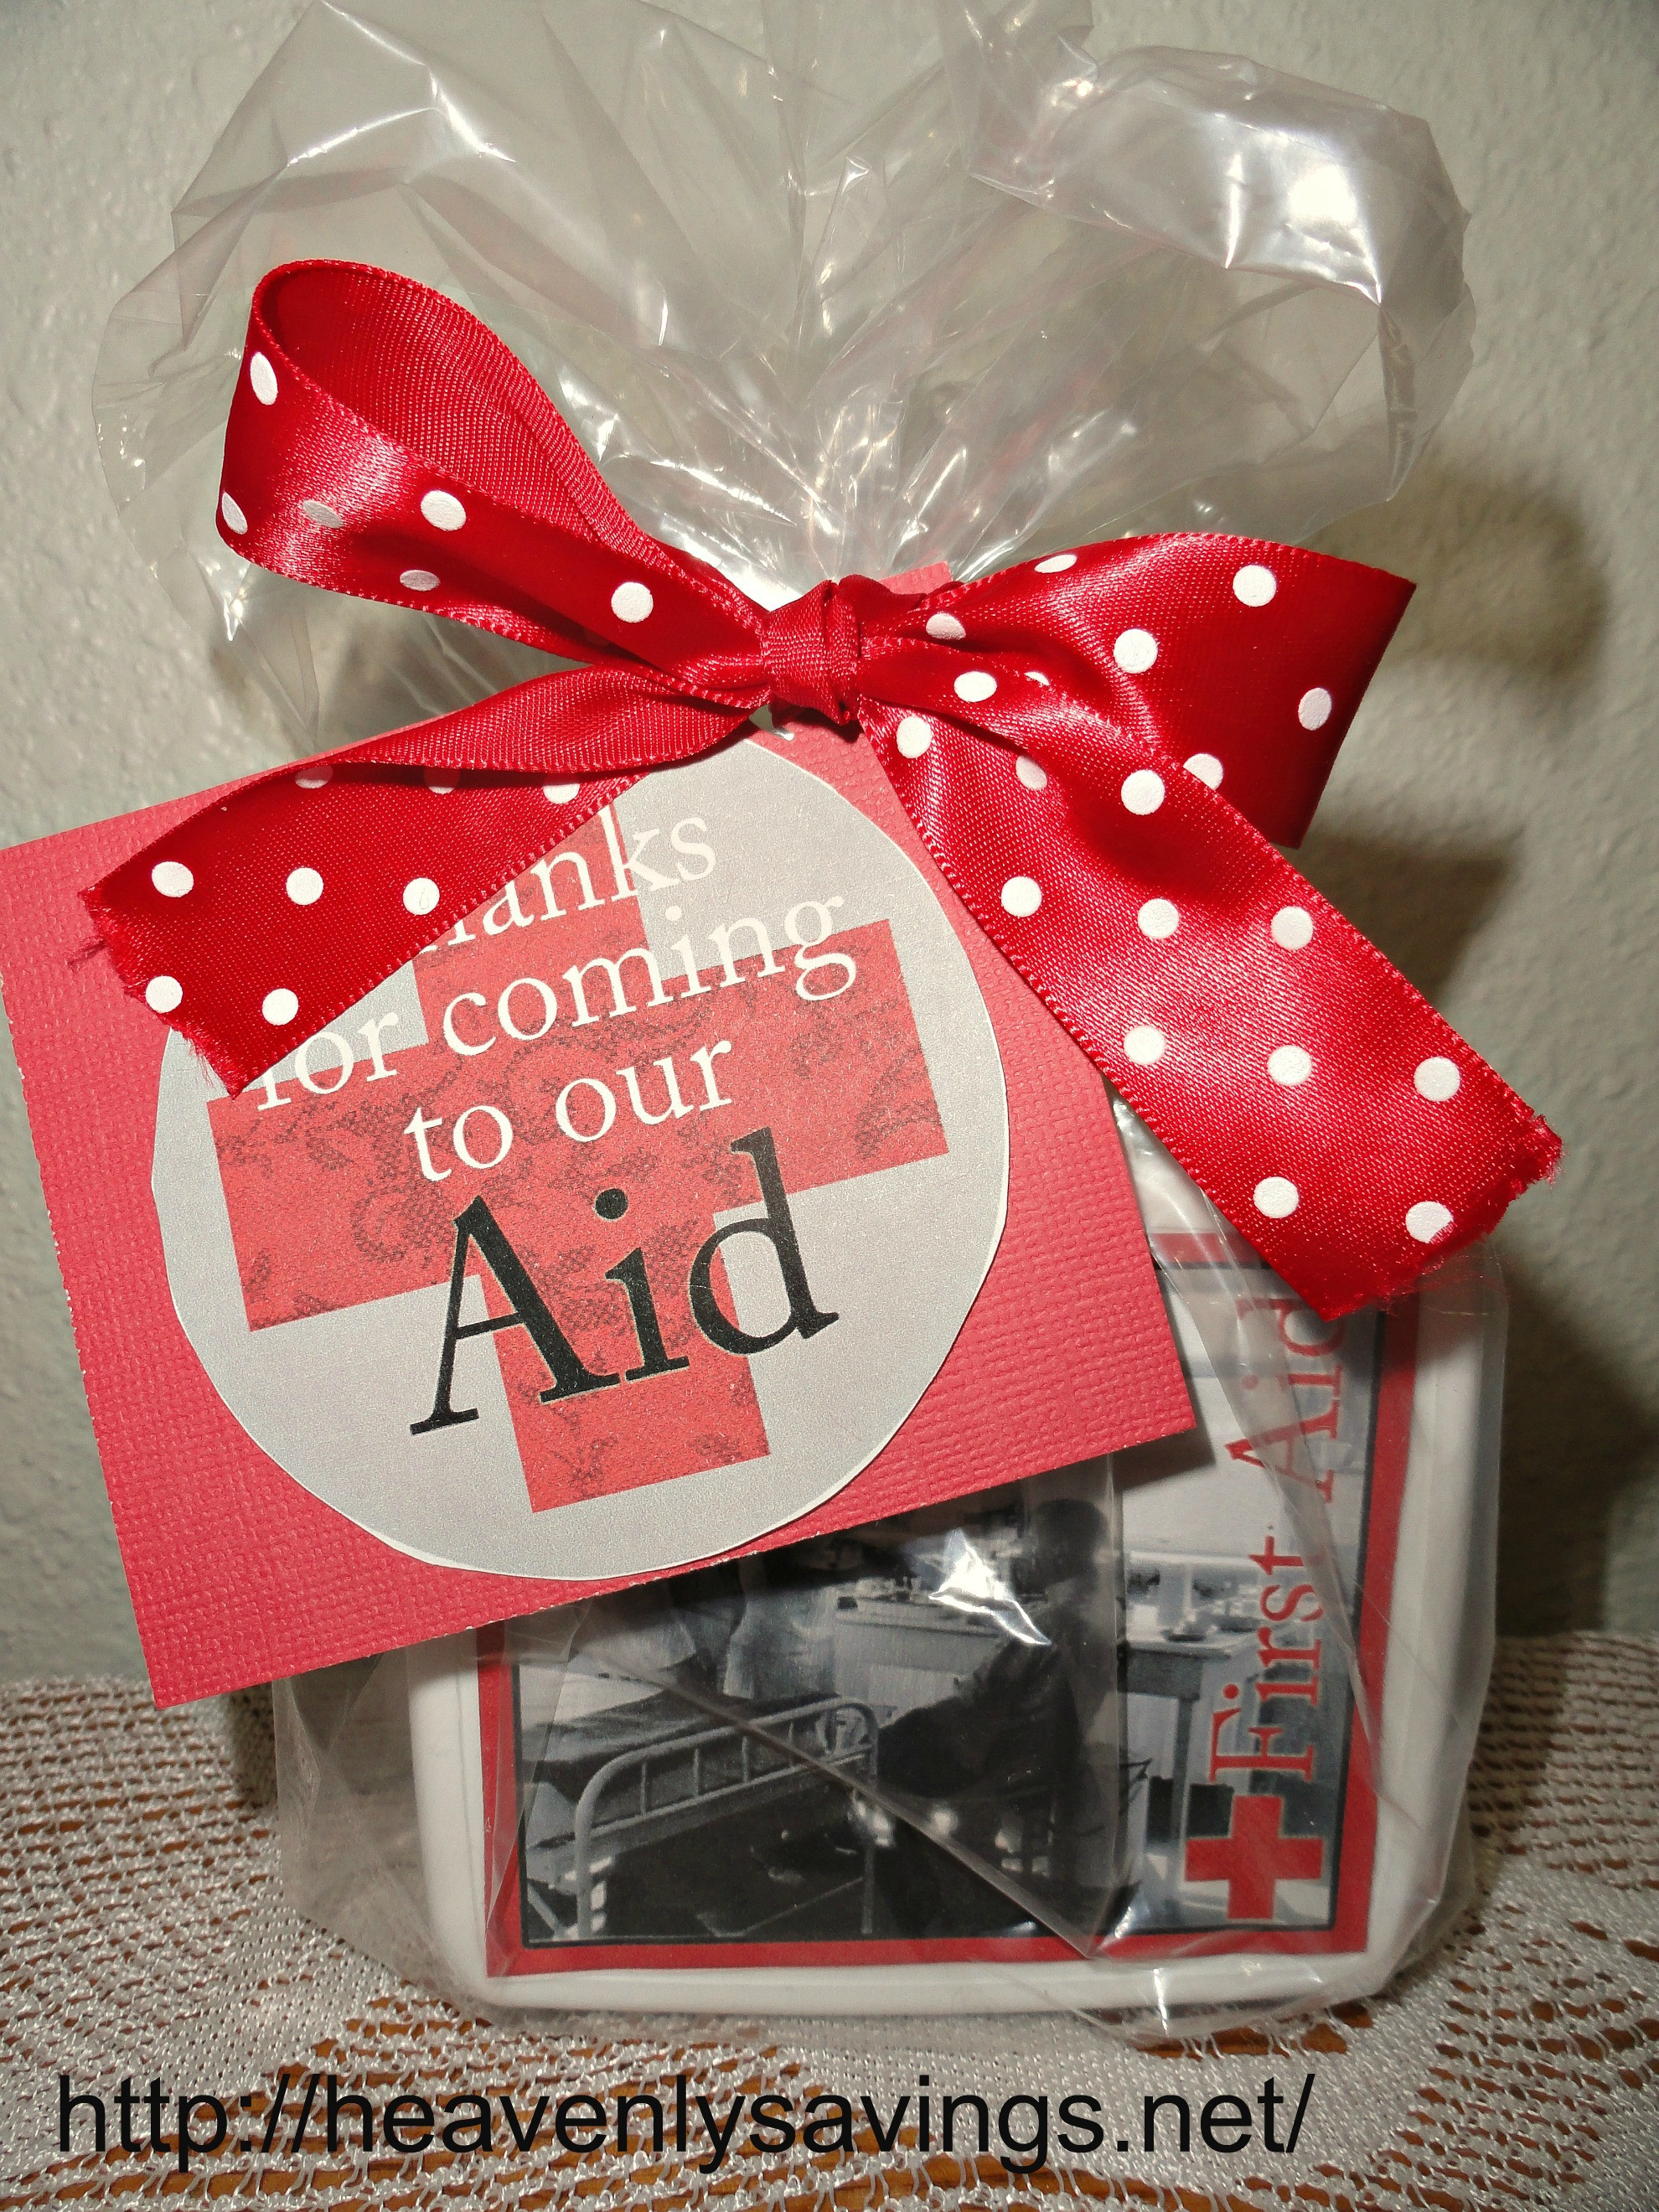 Thank You Gift Ideas  Cheap and Easy Thank You Gift